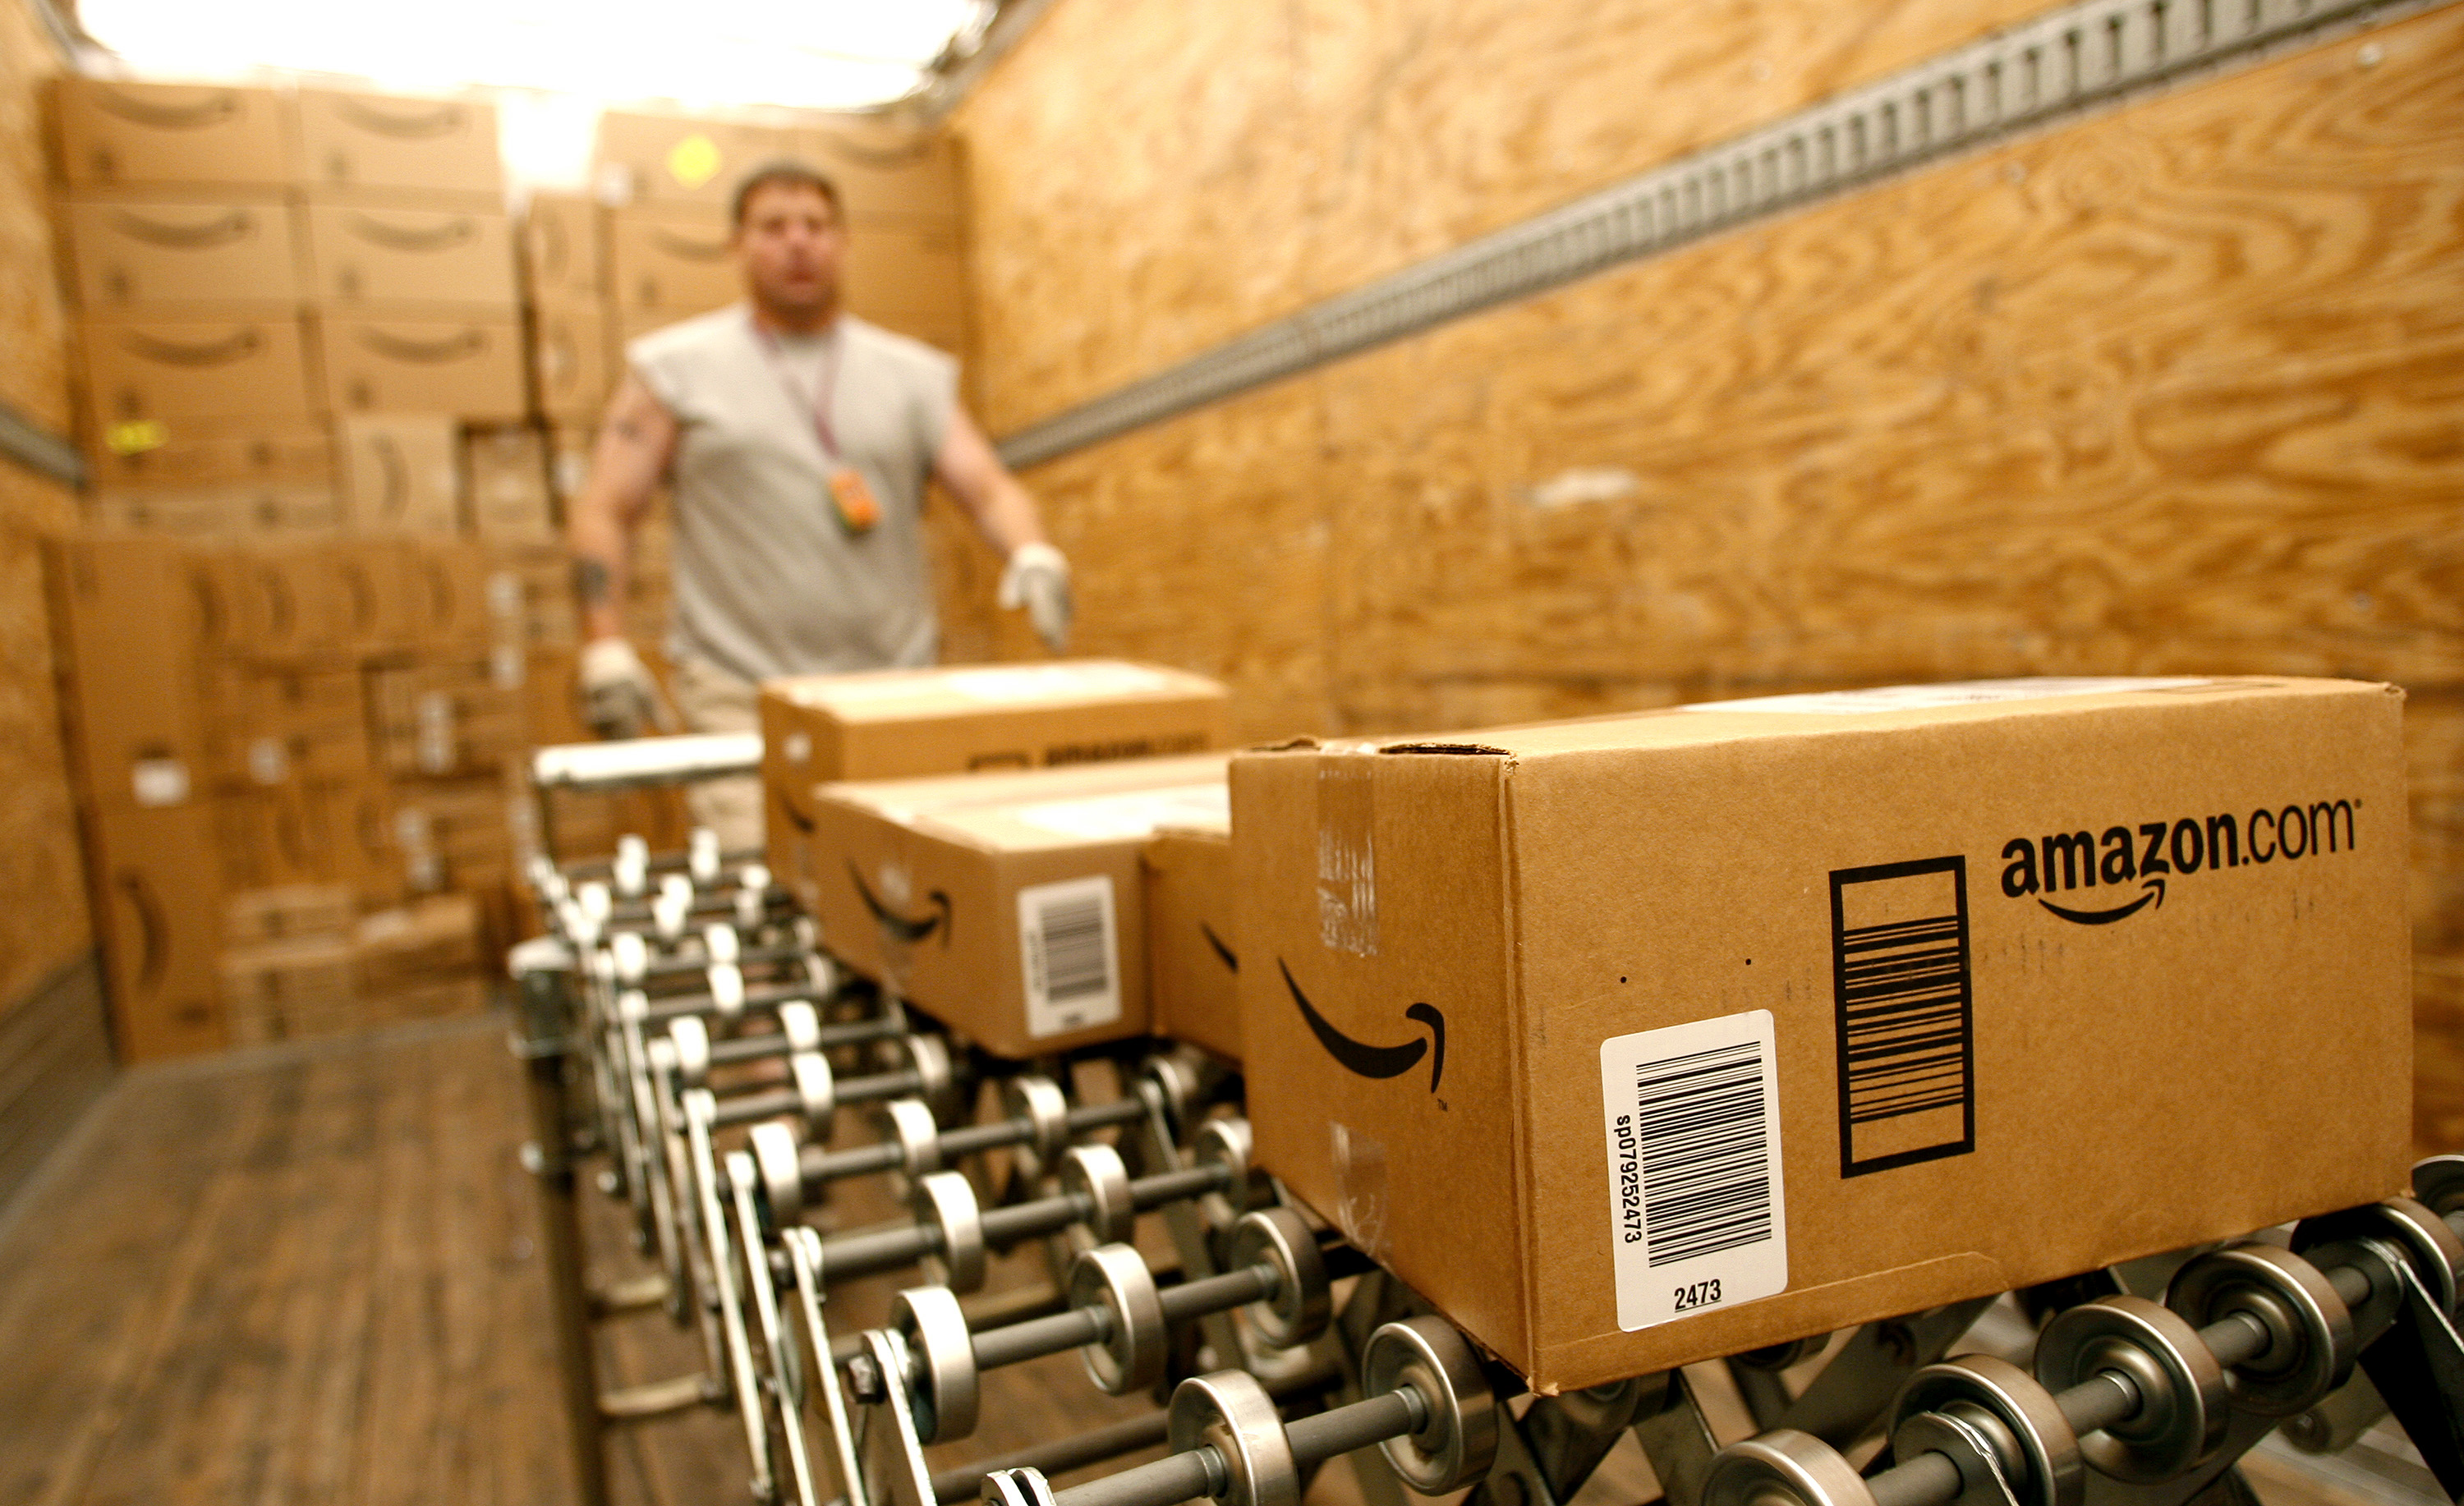 Wristband Tracking for Employees? Amazon Is Working on It